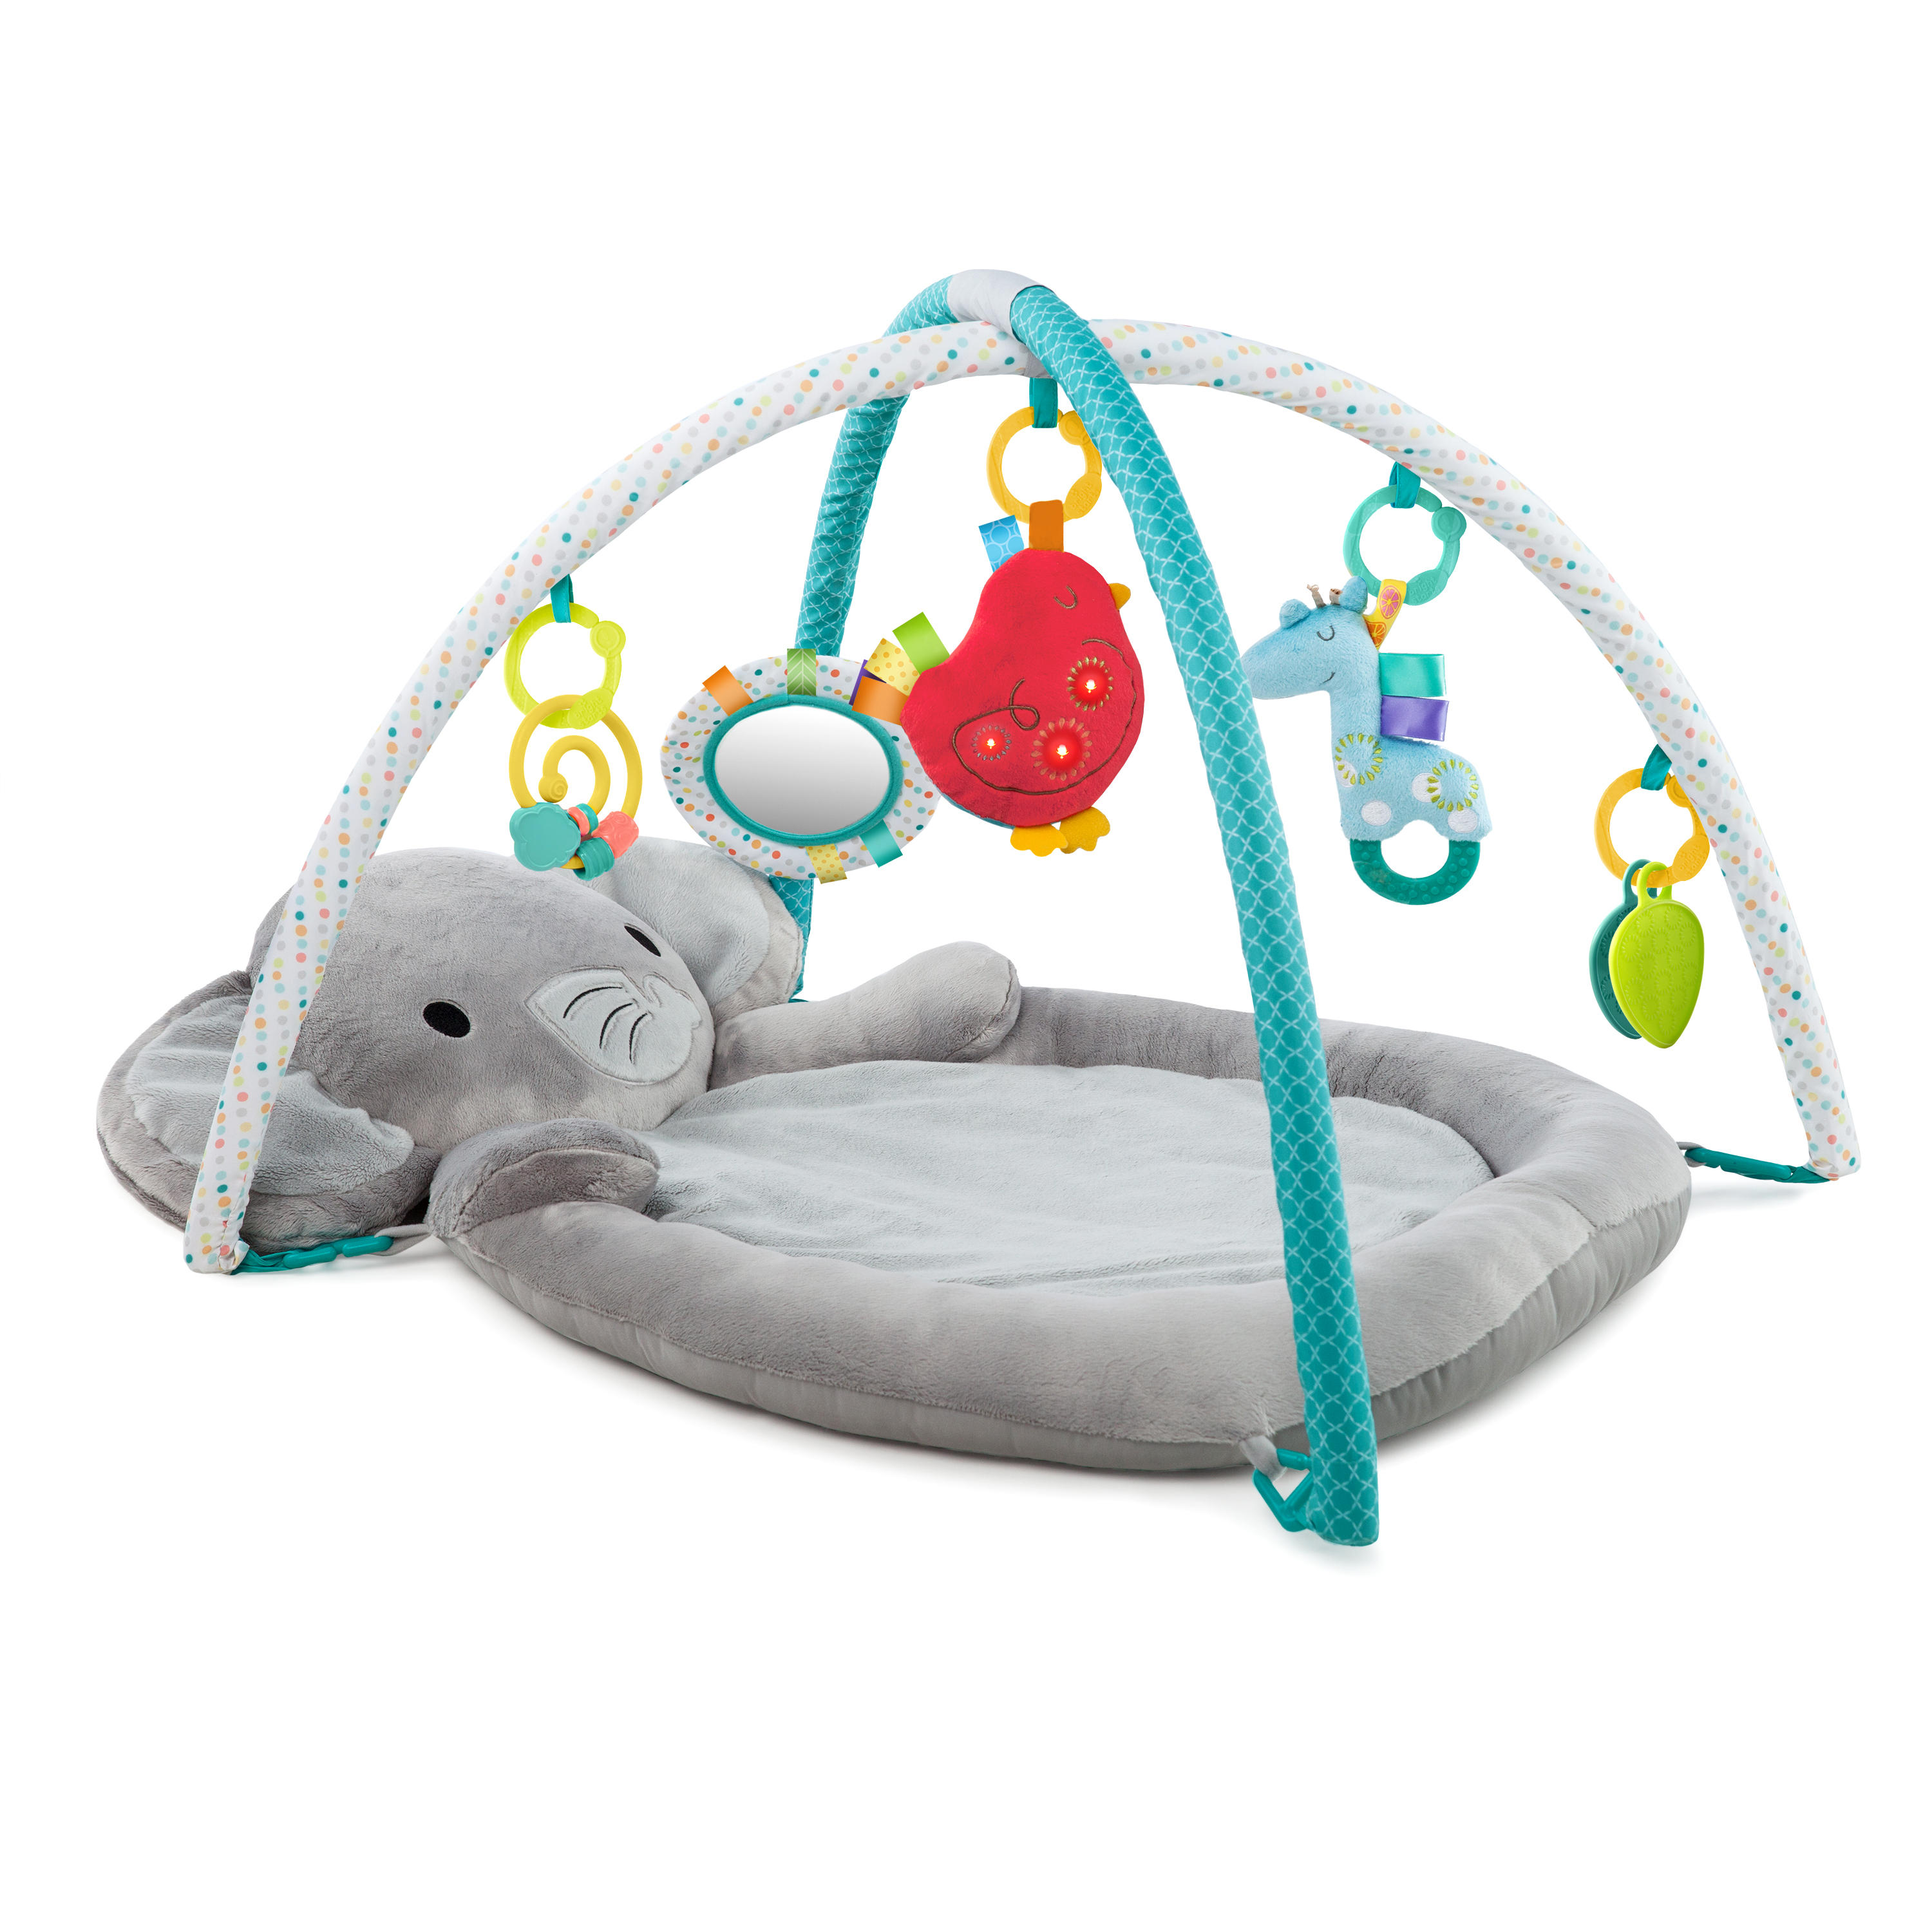 Enchanted Elephants Baby Activity Play Gym